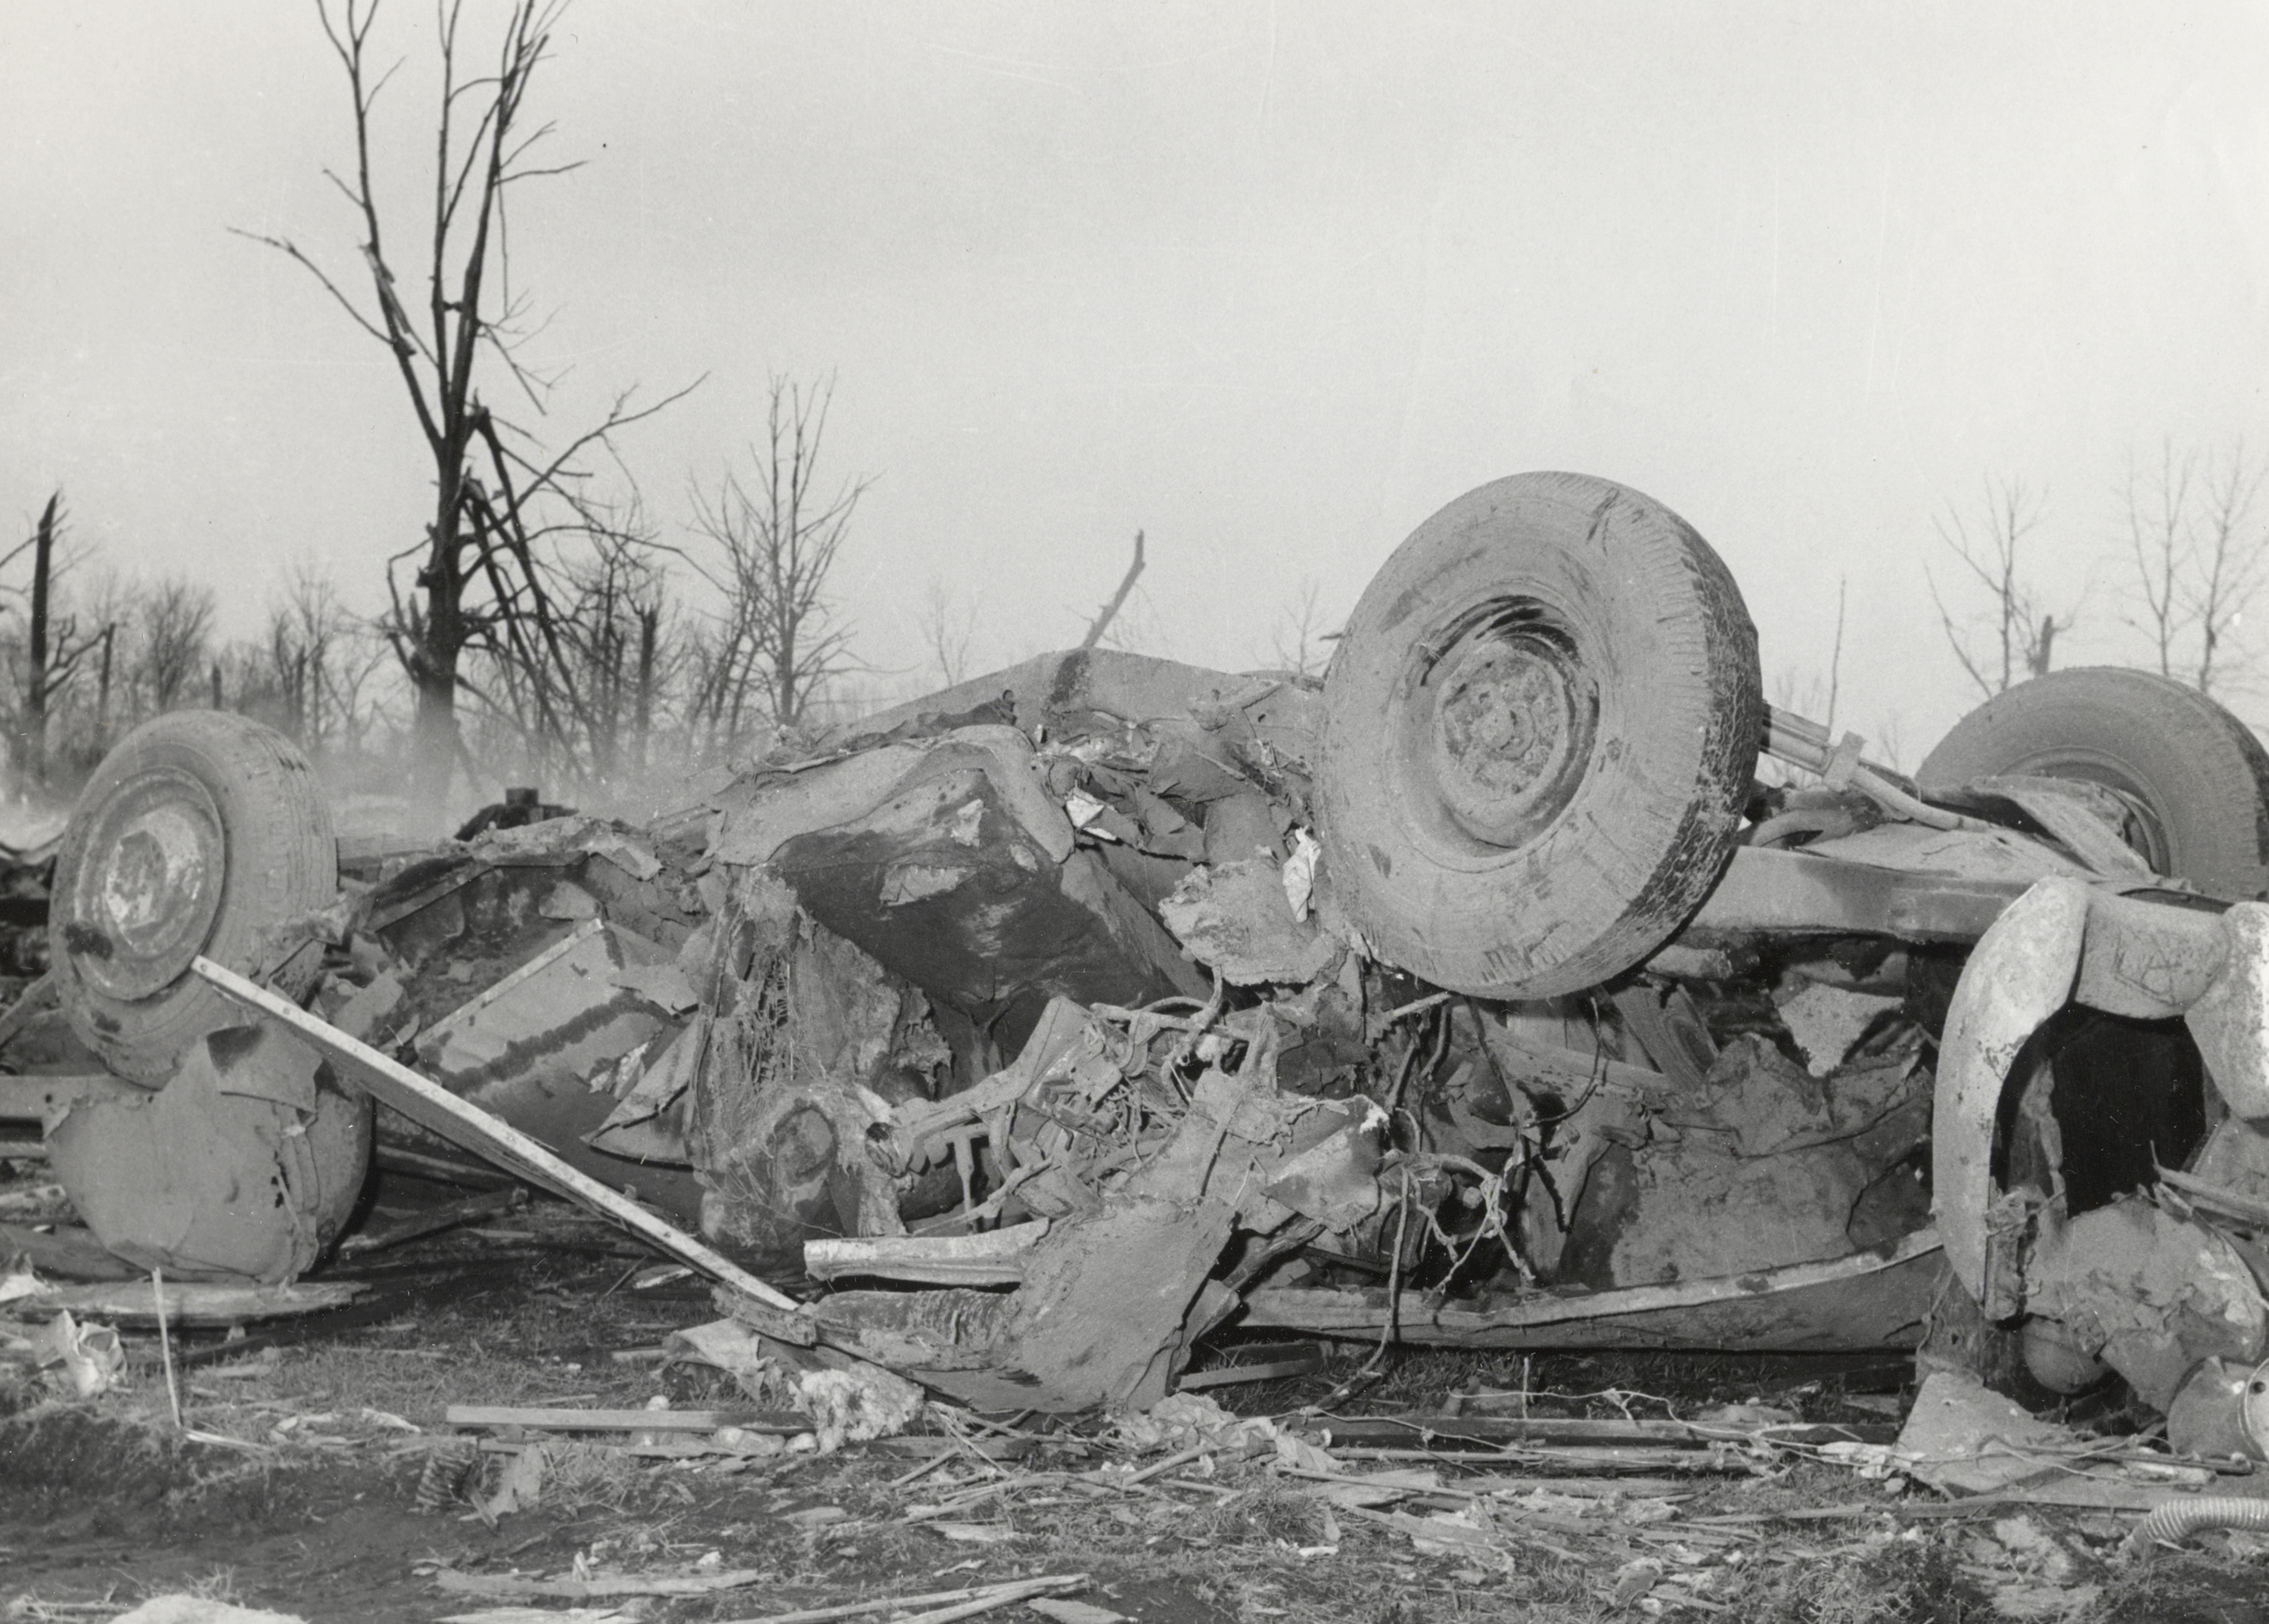 A-vehicle-is-shown-destroyed-after-the-1965-Palm-Sunday-tornadoes-At-least-49-people-died.jpg